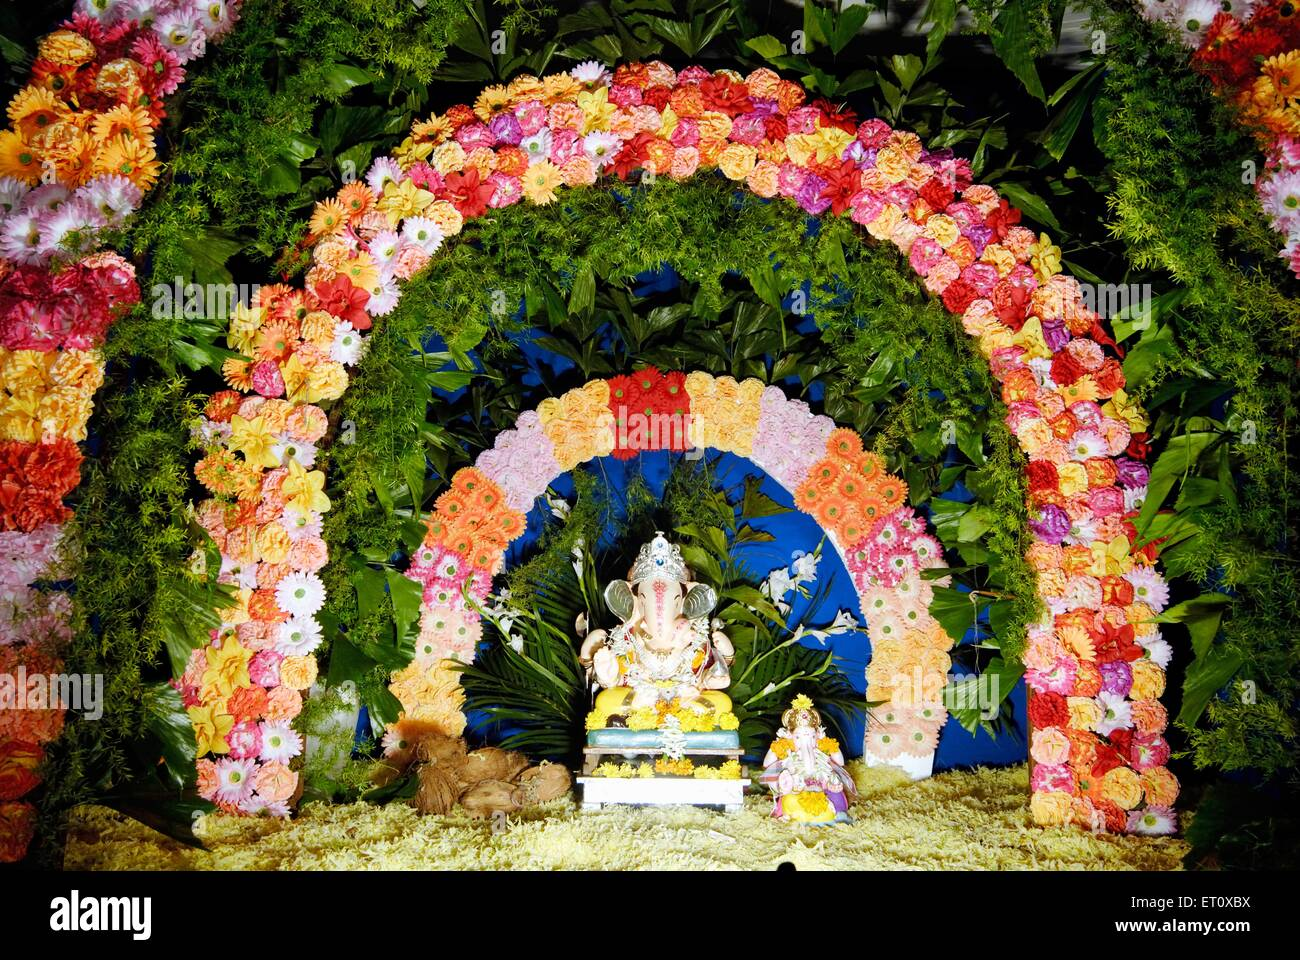 Home Decoration Statues Richly Decorated Two Idols Of Lord Ganesh Elephant Headed